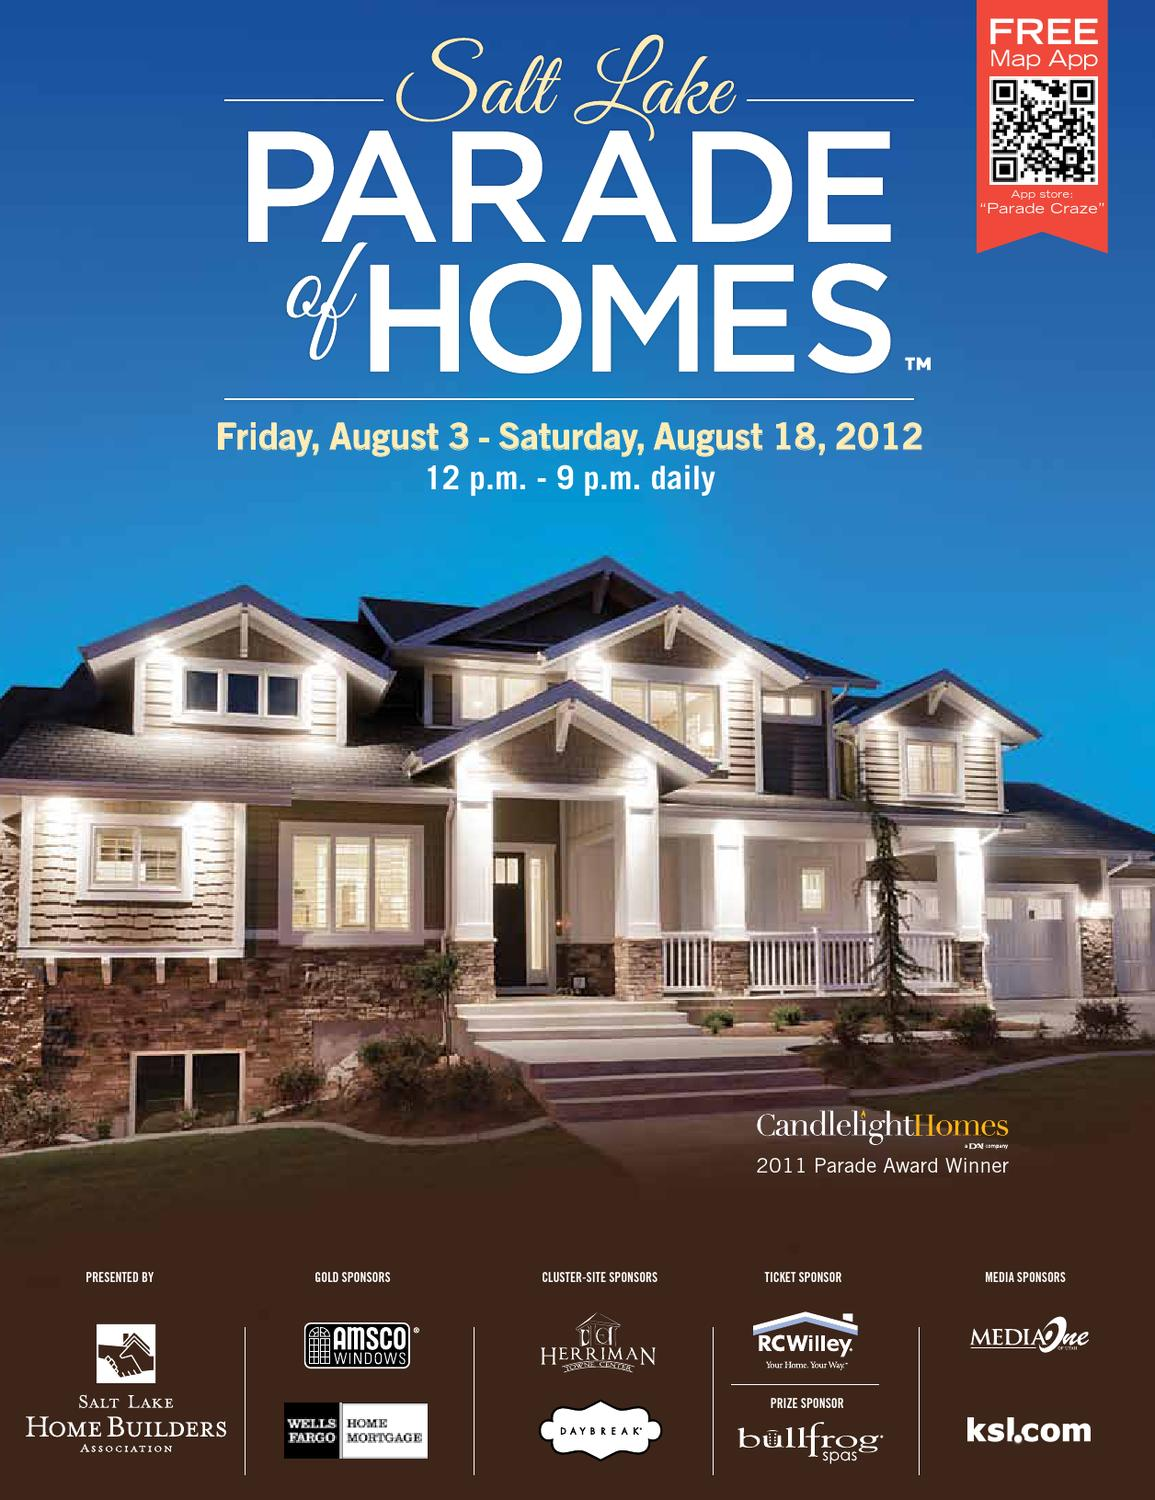 Salt lake parade of homes 2013 by utah media group issuu for Utah homebuilders